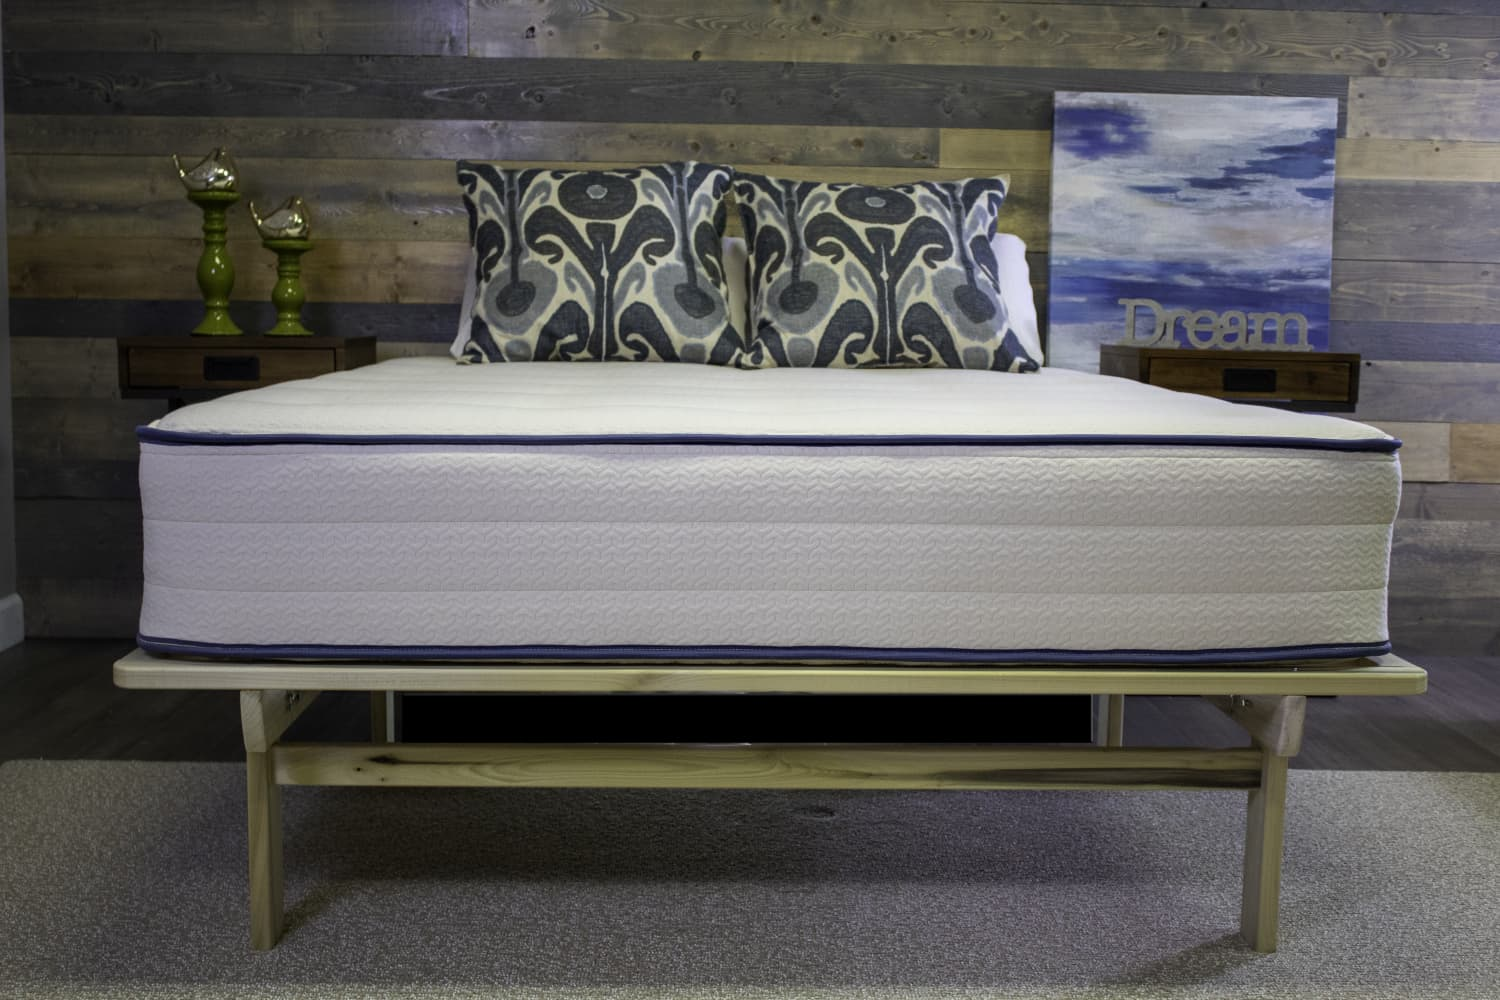 Shopping for a New Mattress? Here's What to Look For (and What to Avoid)